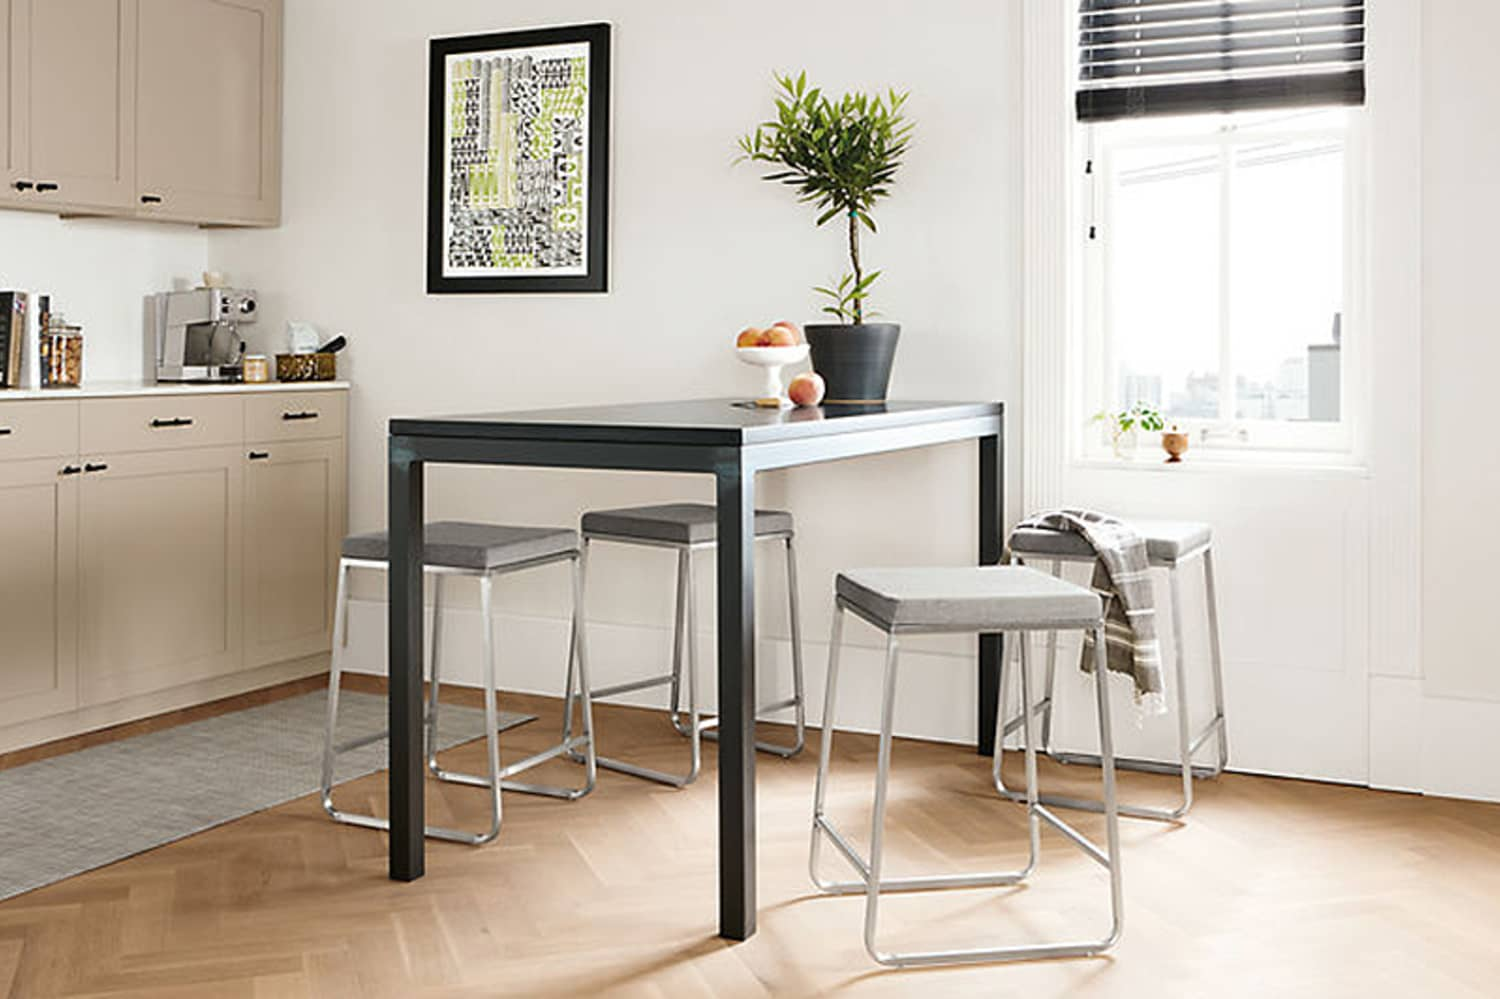 Small Spaces || Apartment Decorating Ideas - Somewhat Simple